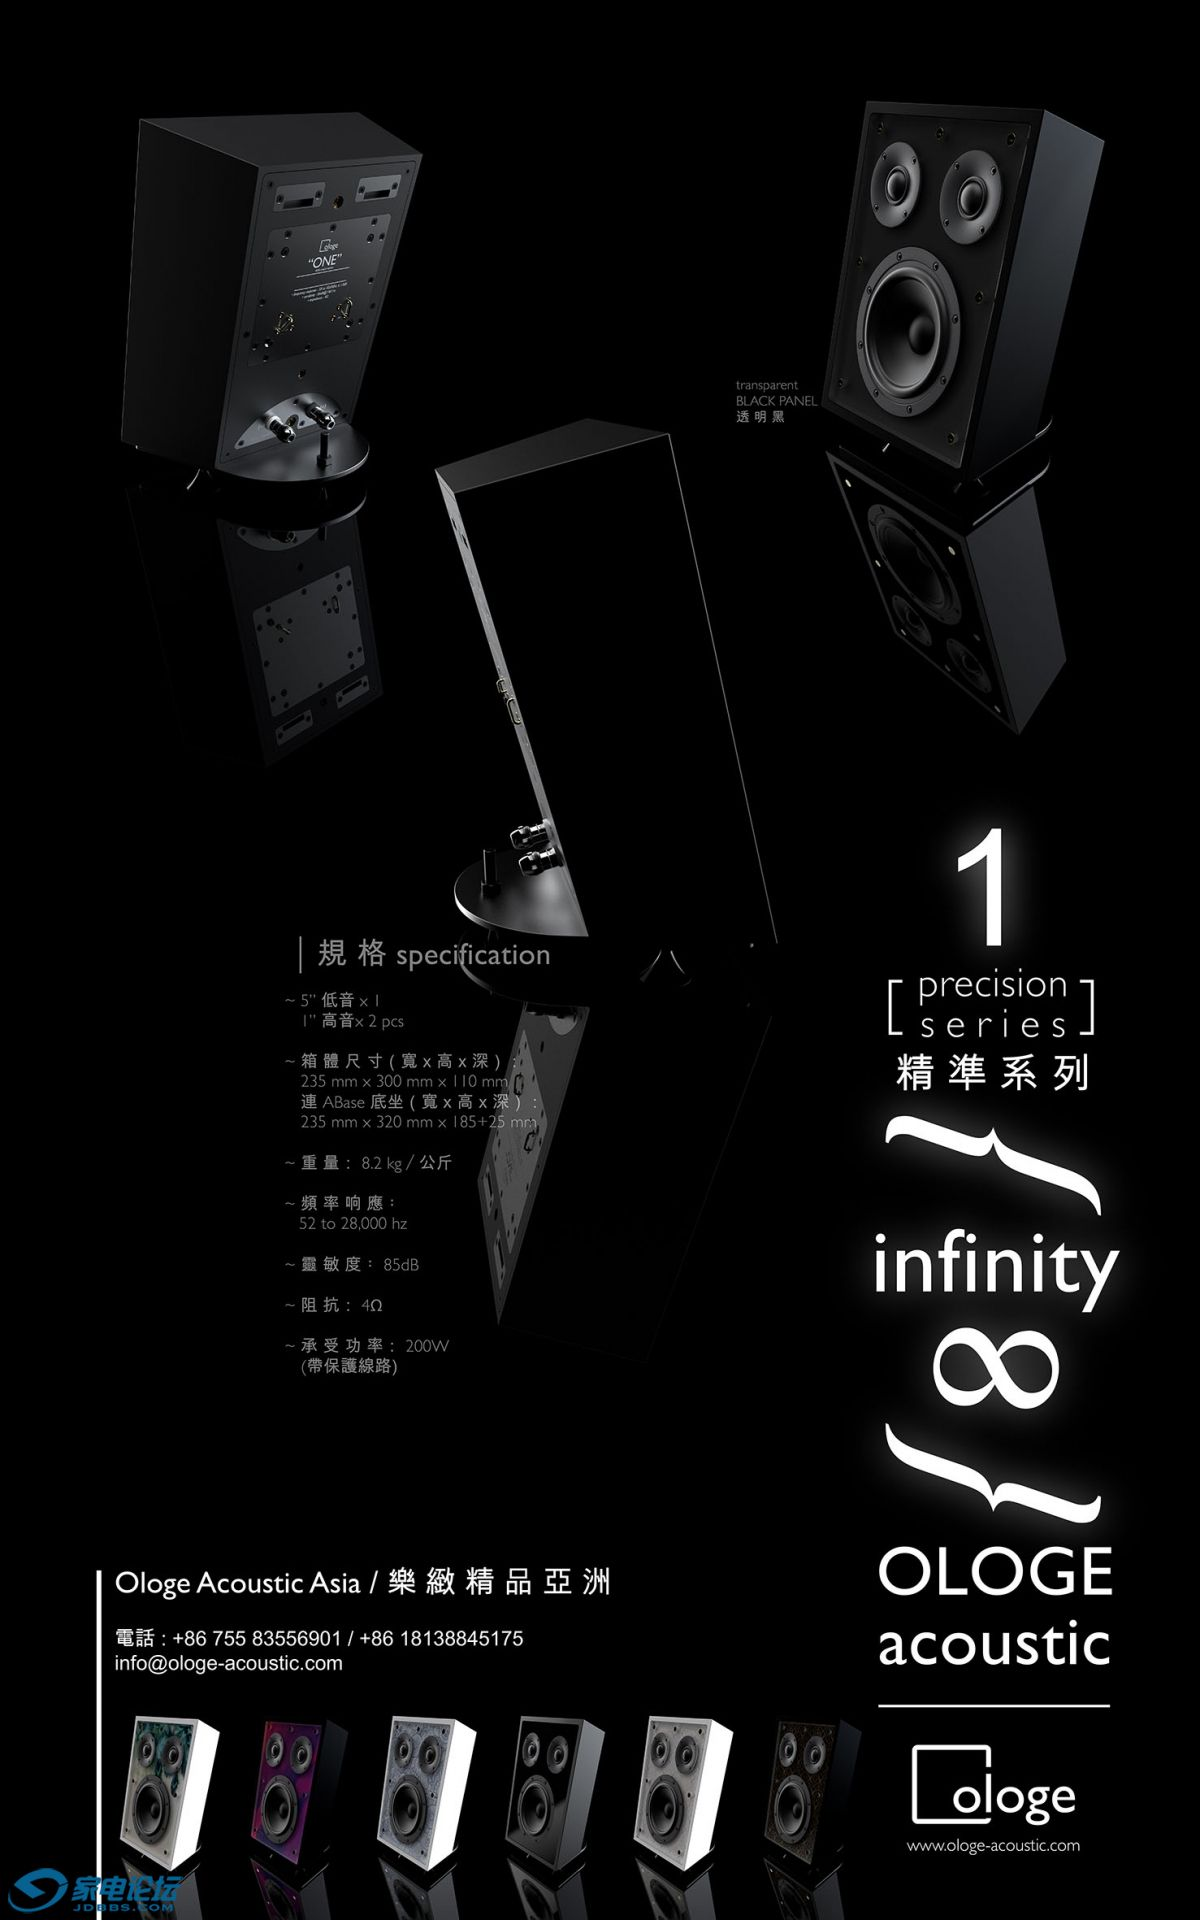 infinity layout - chinese-2.jpg